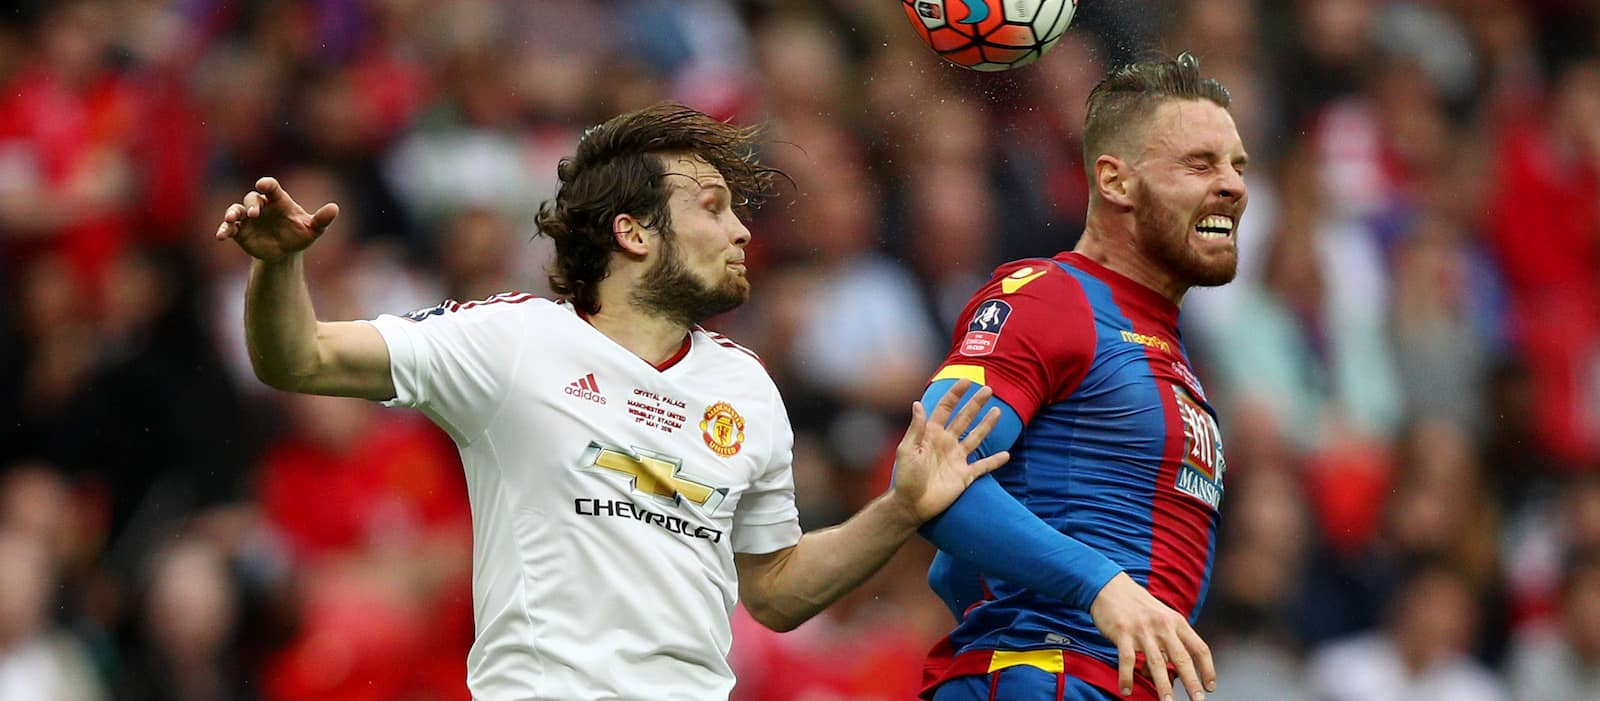 Manchester United's Daley Blind confirms end-of-season injury